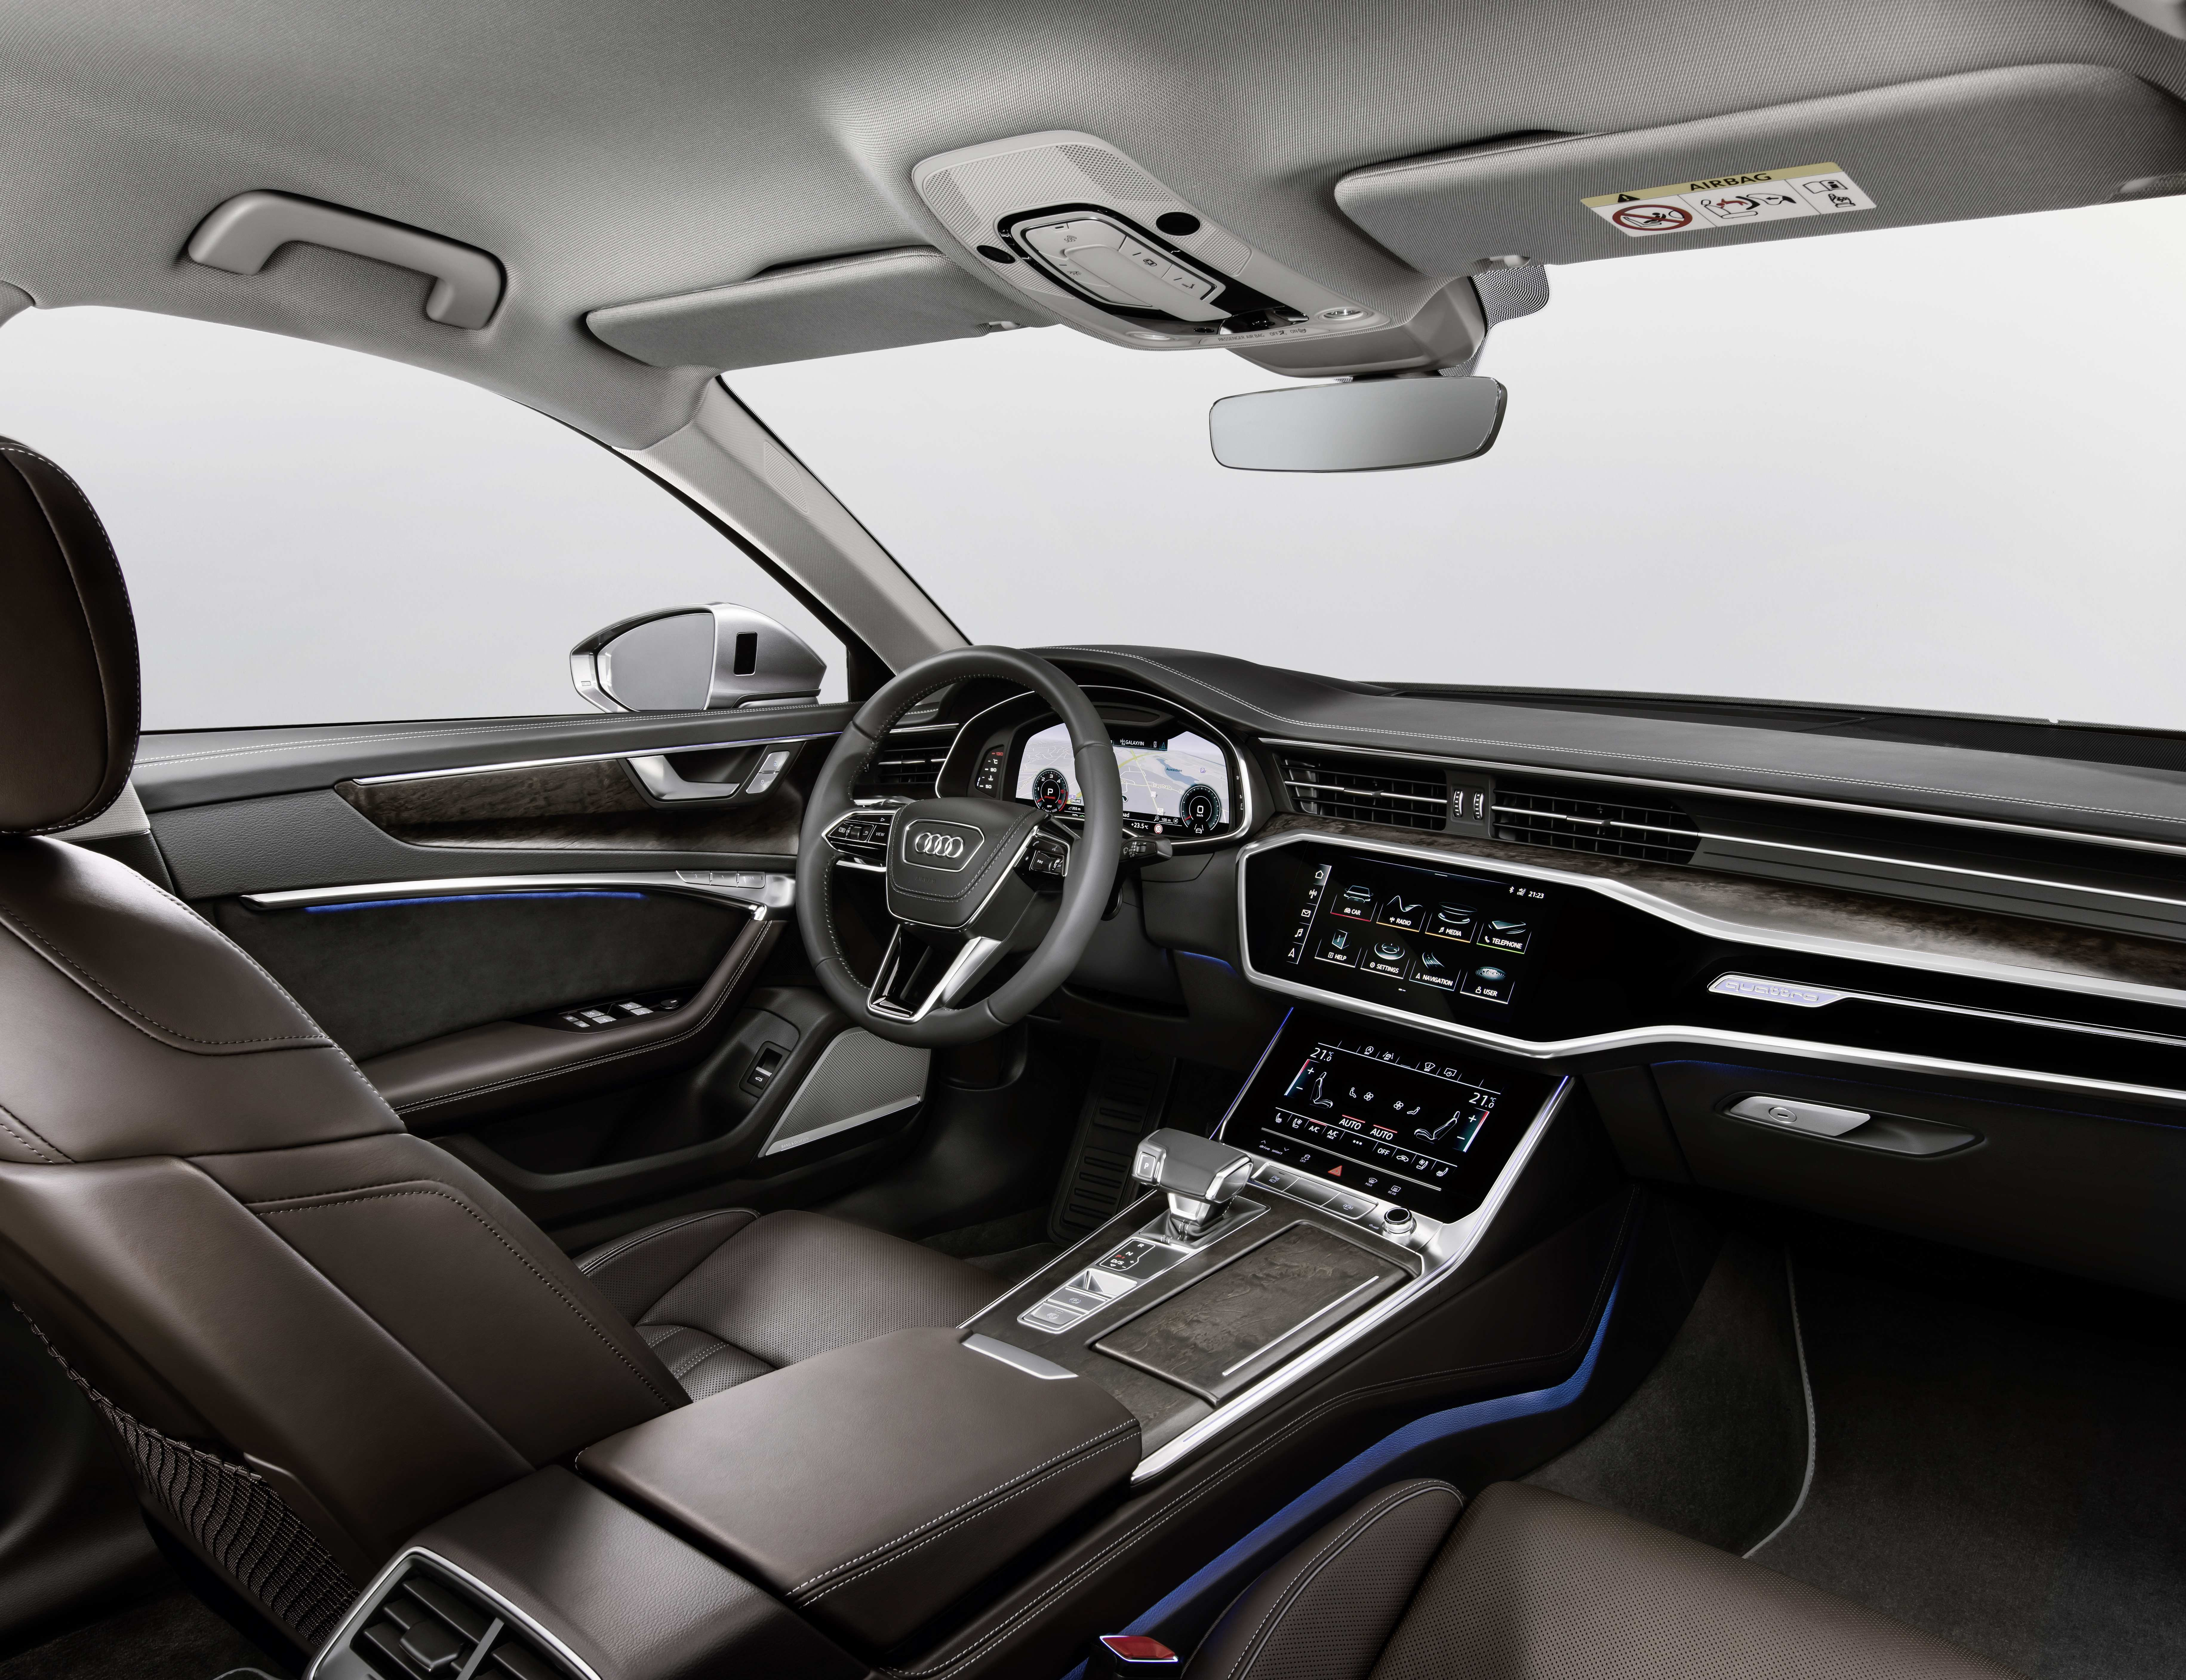 66 All New 2019 Audi A6 Release Date Interior with 2019 Audi A6 Release Date